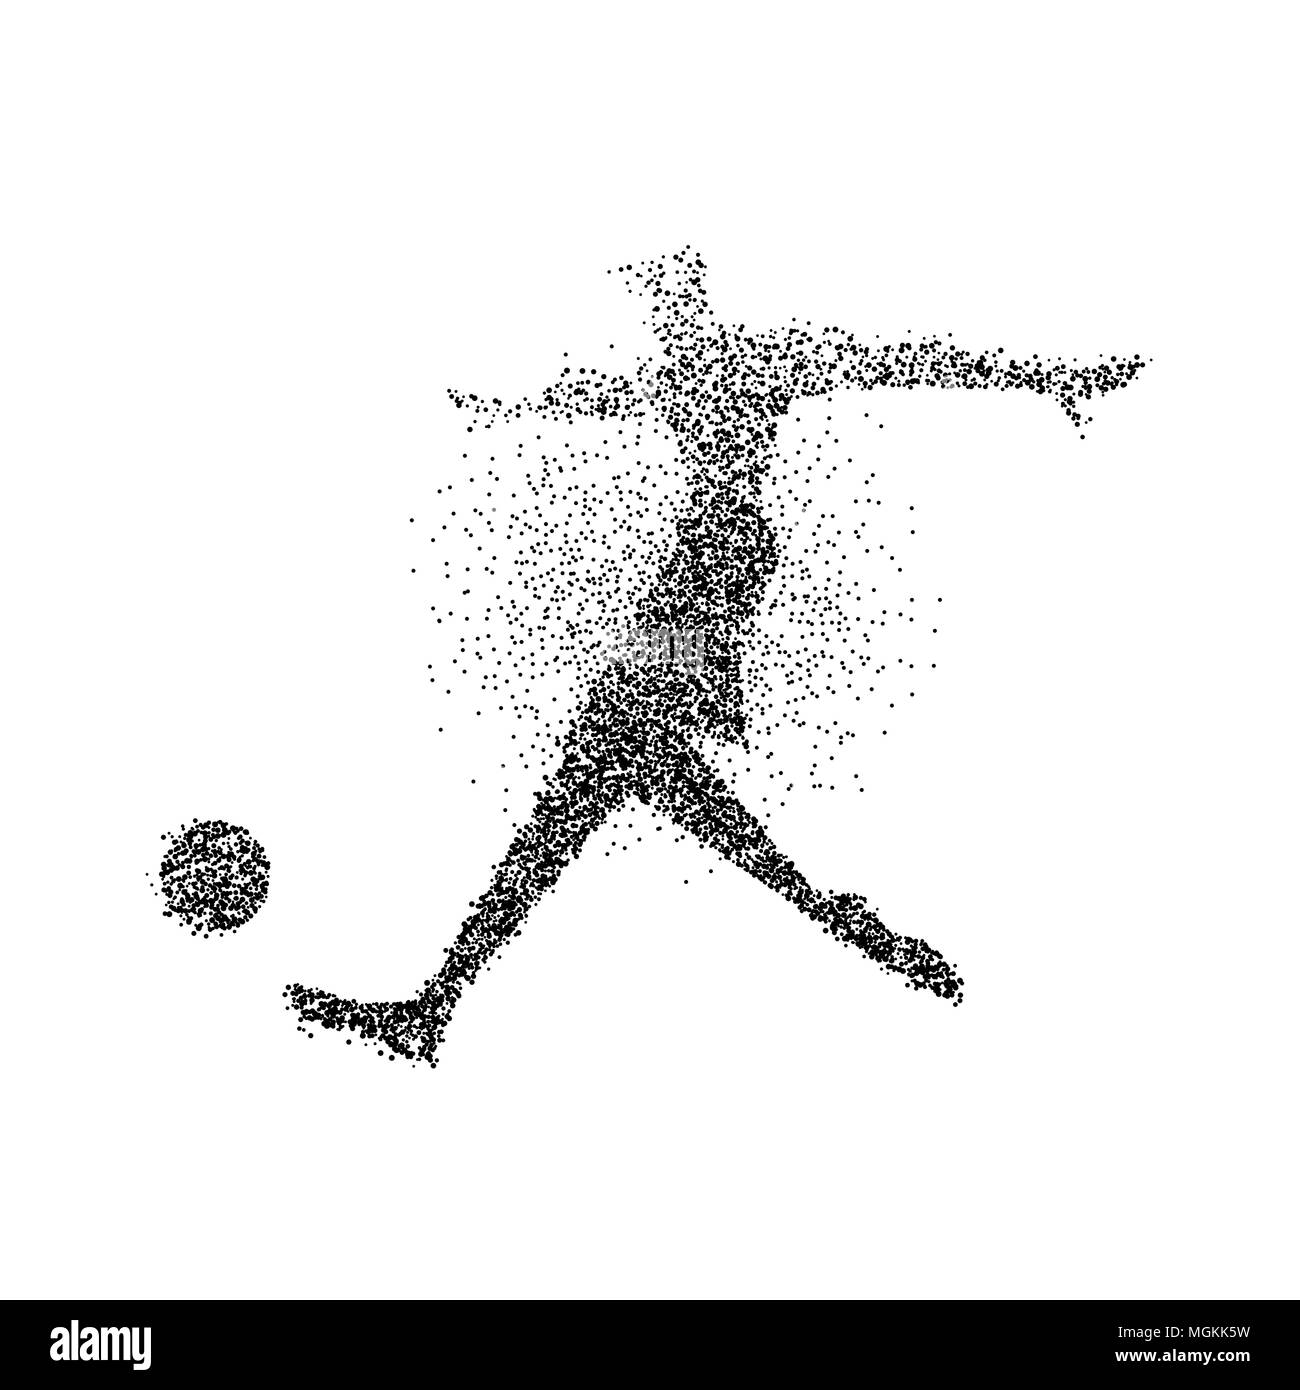 Soccer player silhouette made of black particle splash on isolated background abstract athlete man in motion with ball eps10 vector